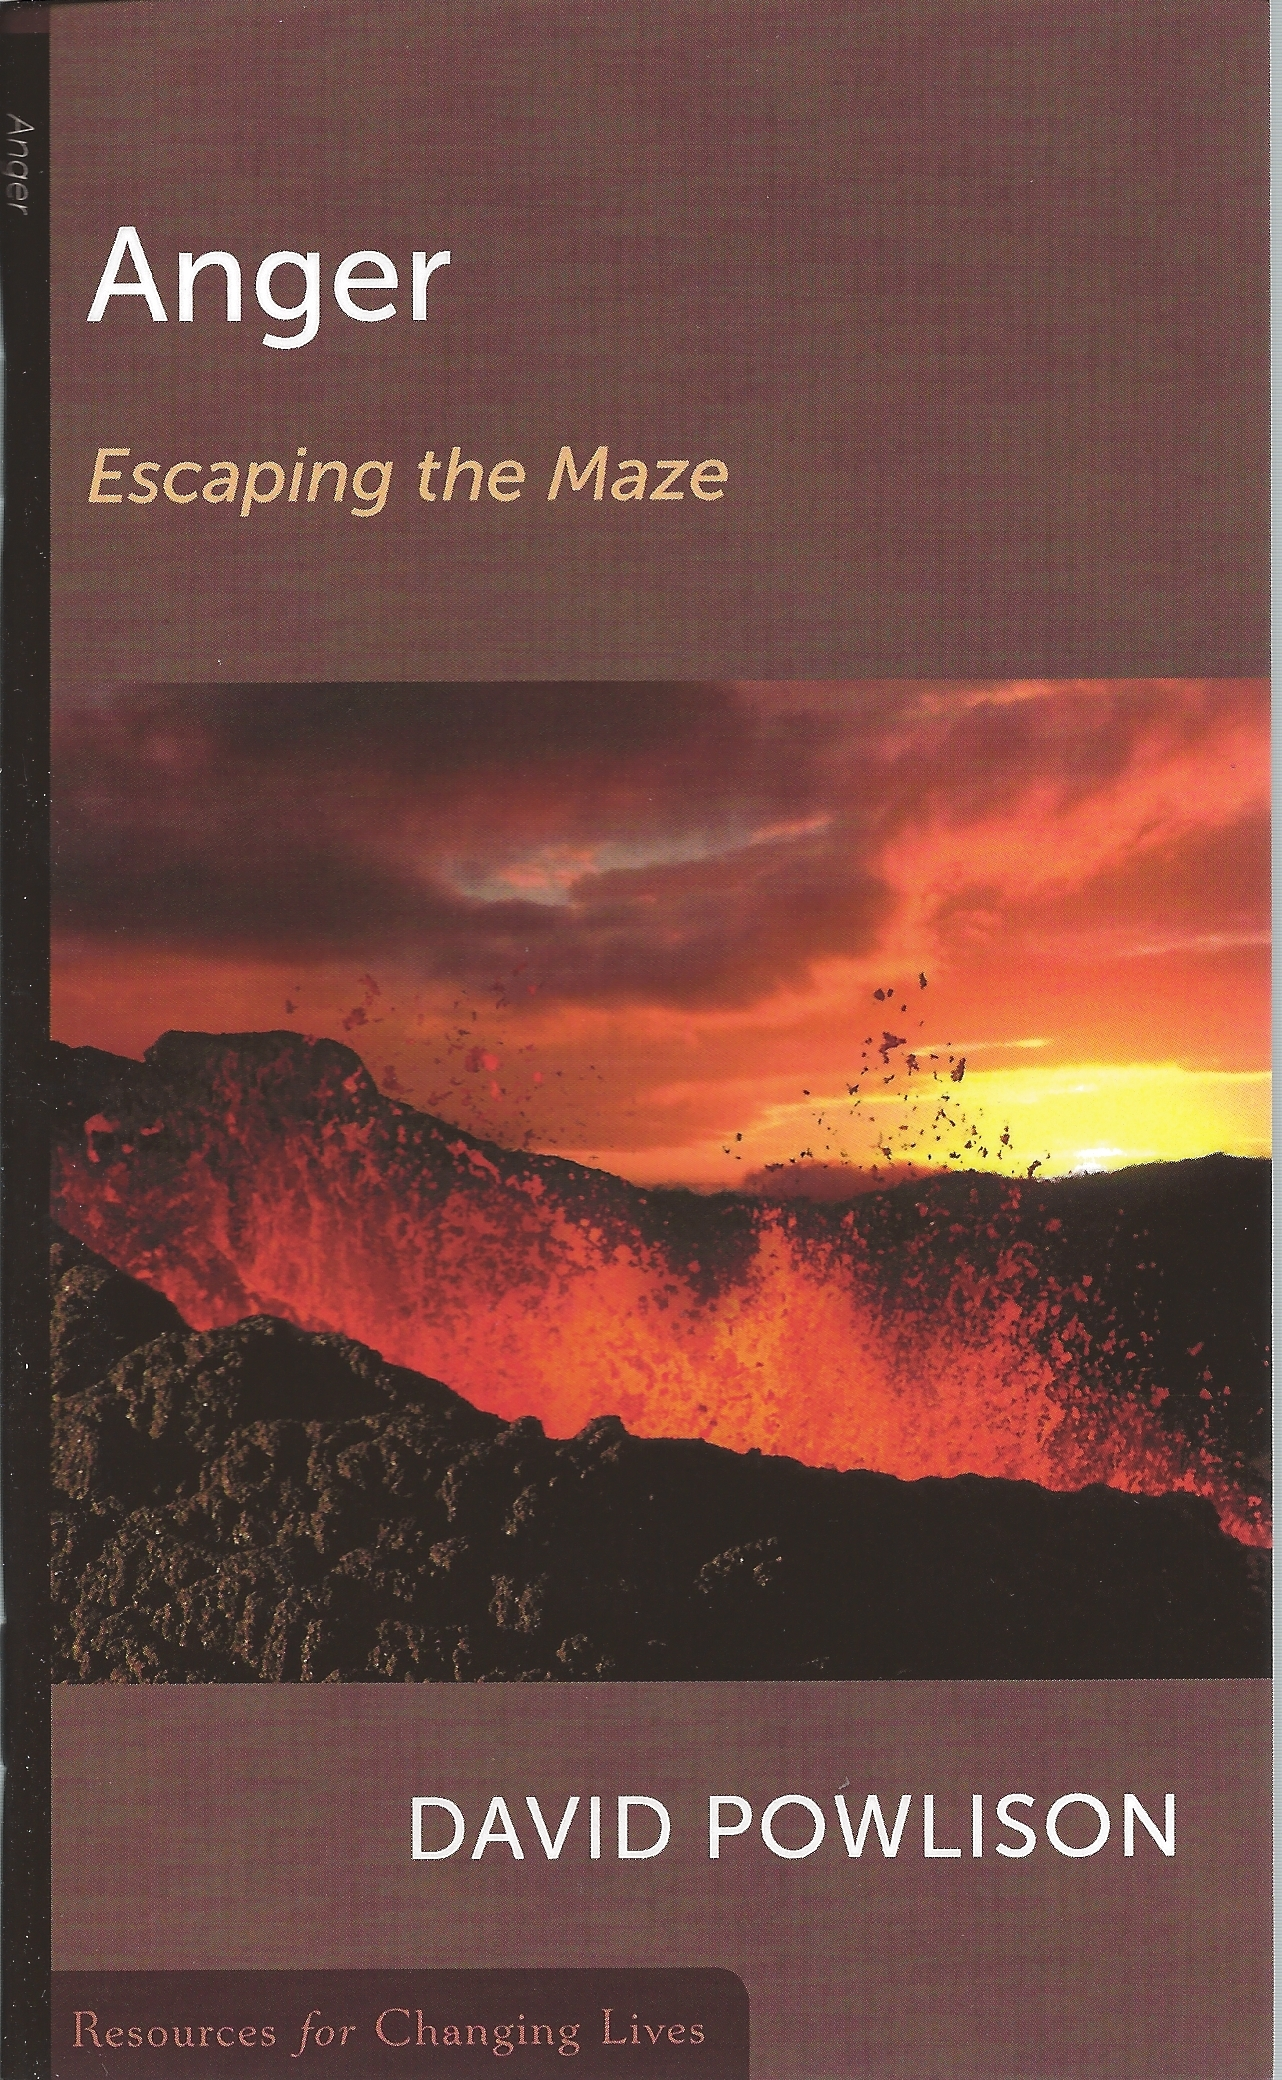 ANGER, ESCAPING THE MAZE David Powlison